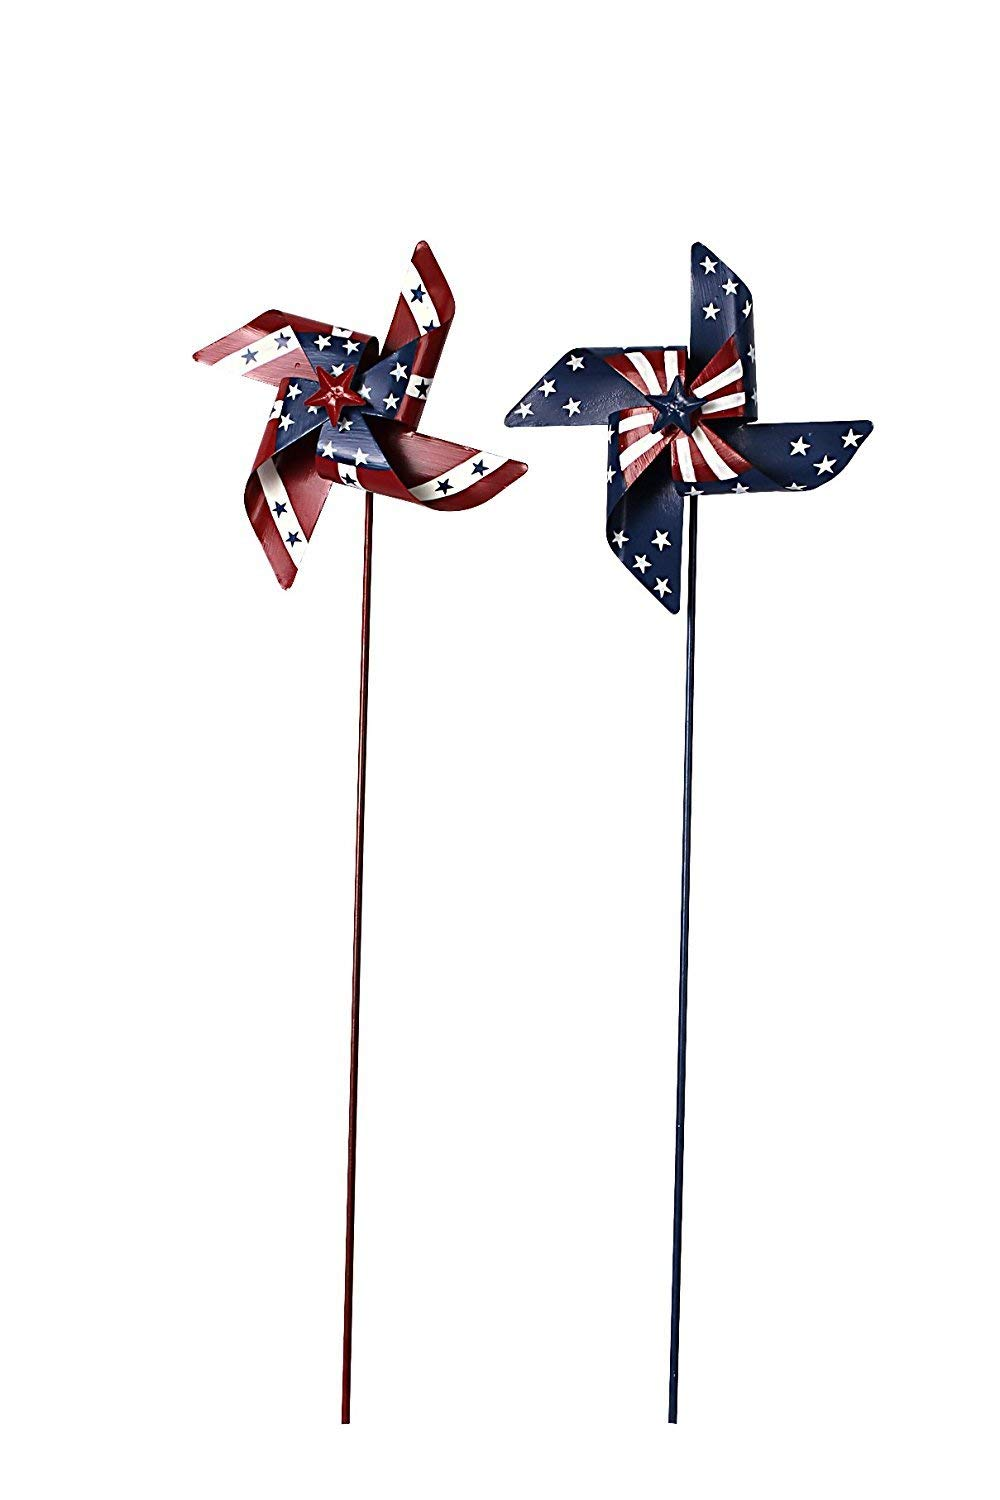 Waroom Home Patriotic Pinwheel Set of 2, American Flag Metal Wind Spinner for 4th of July Decoration, Stars and Stripes, Red White and Blue (M)